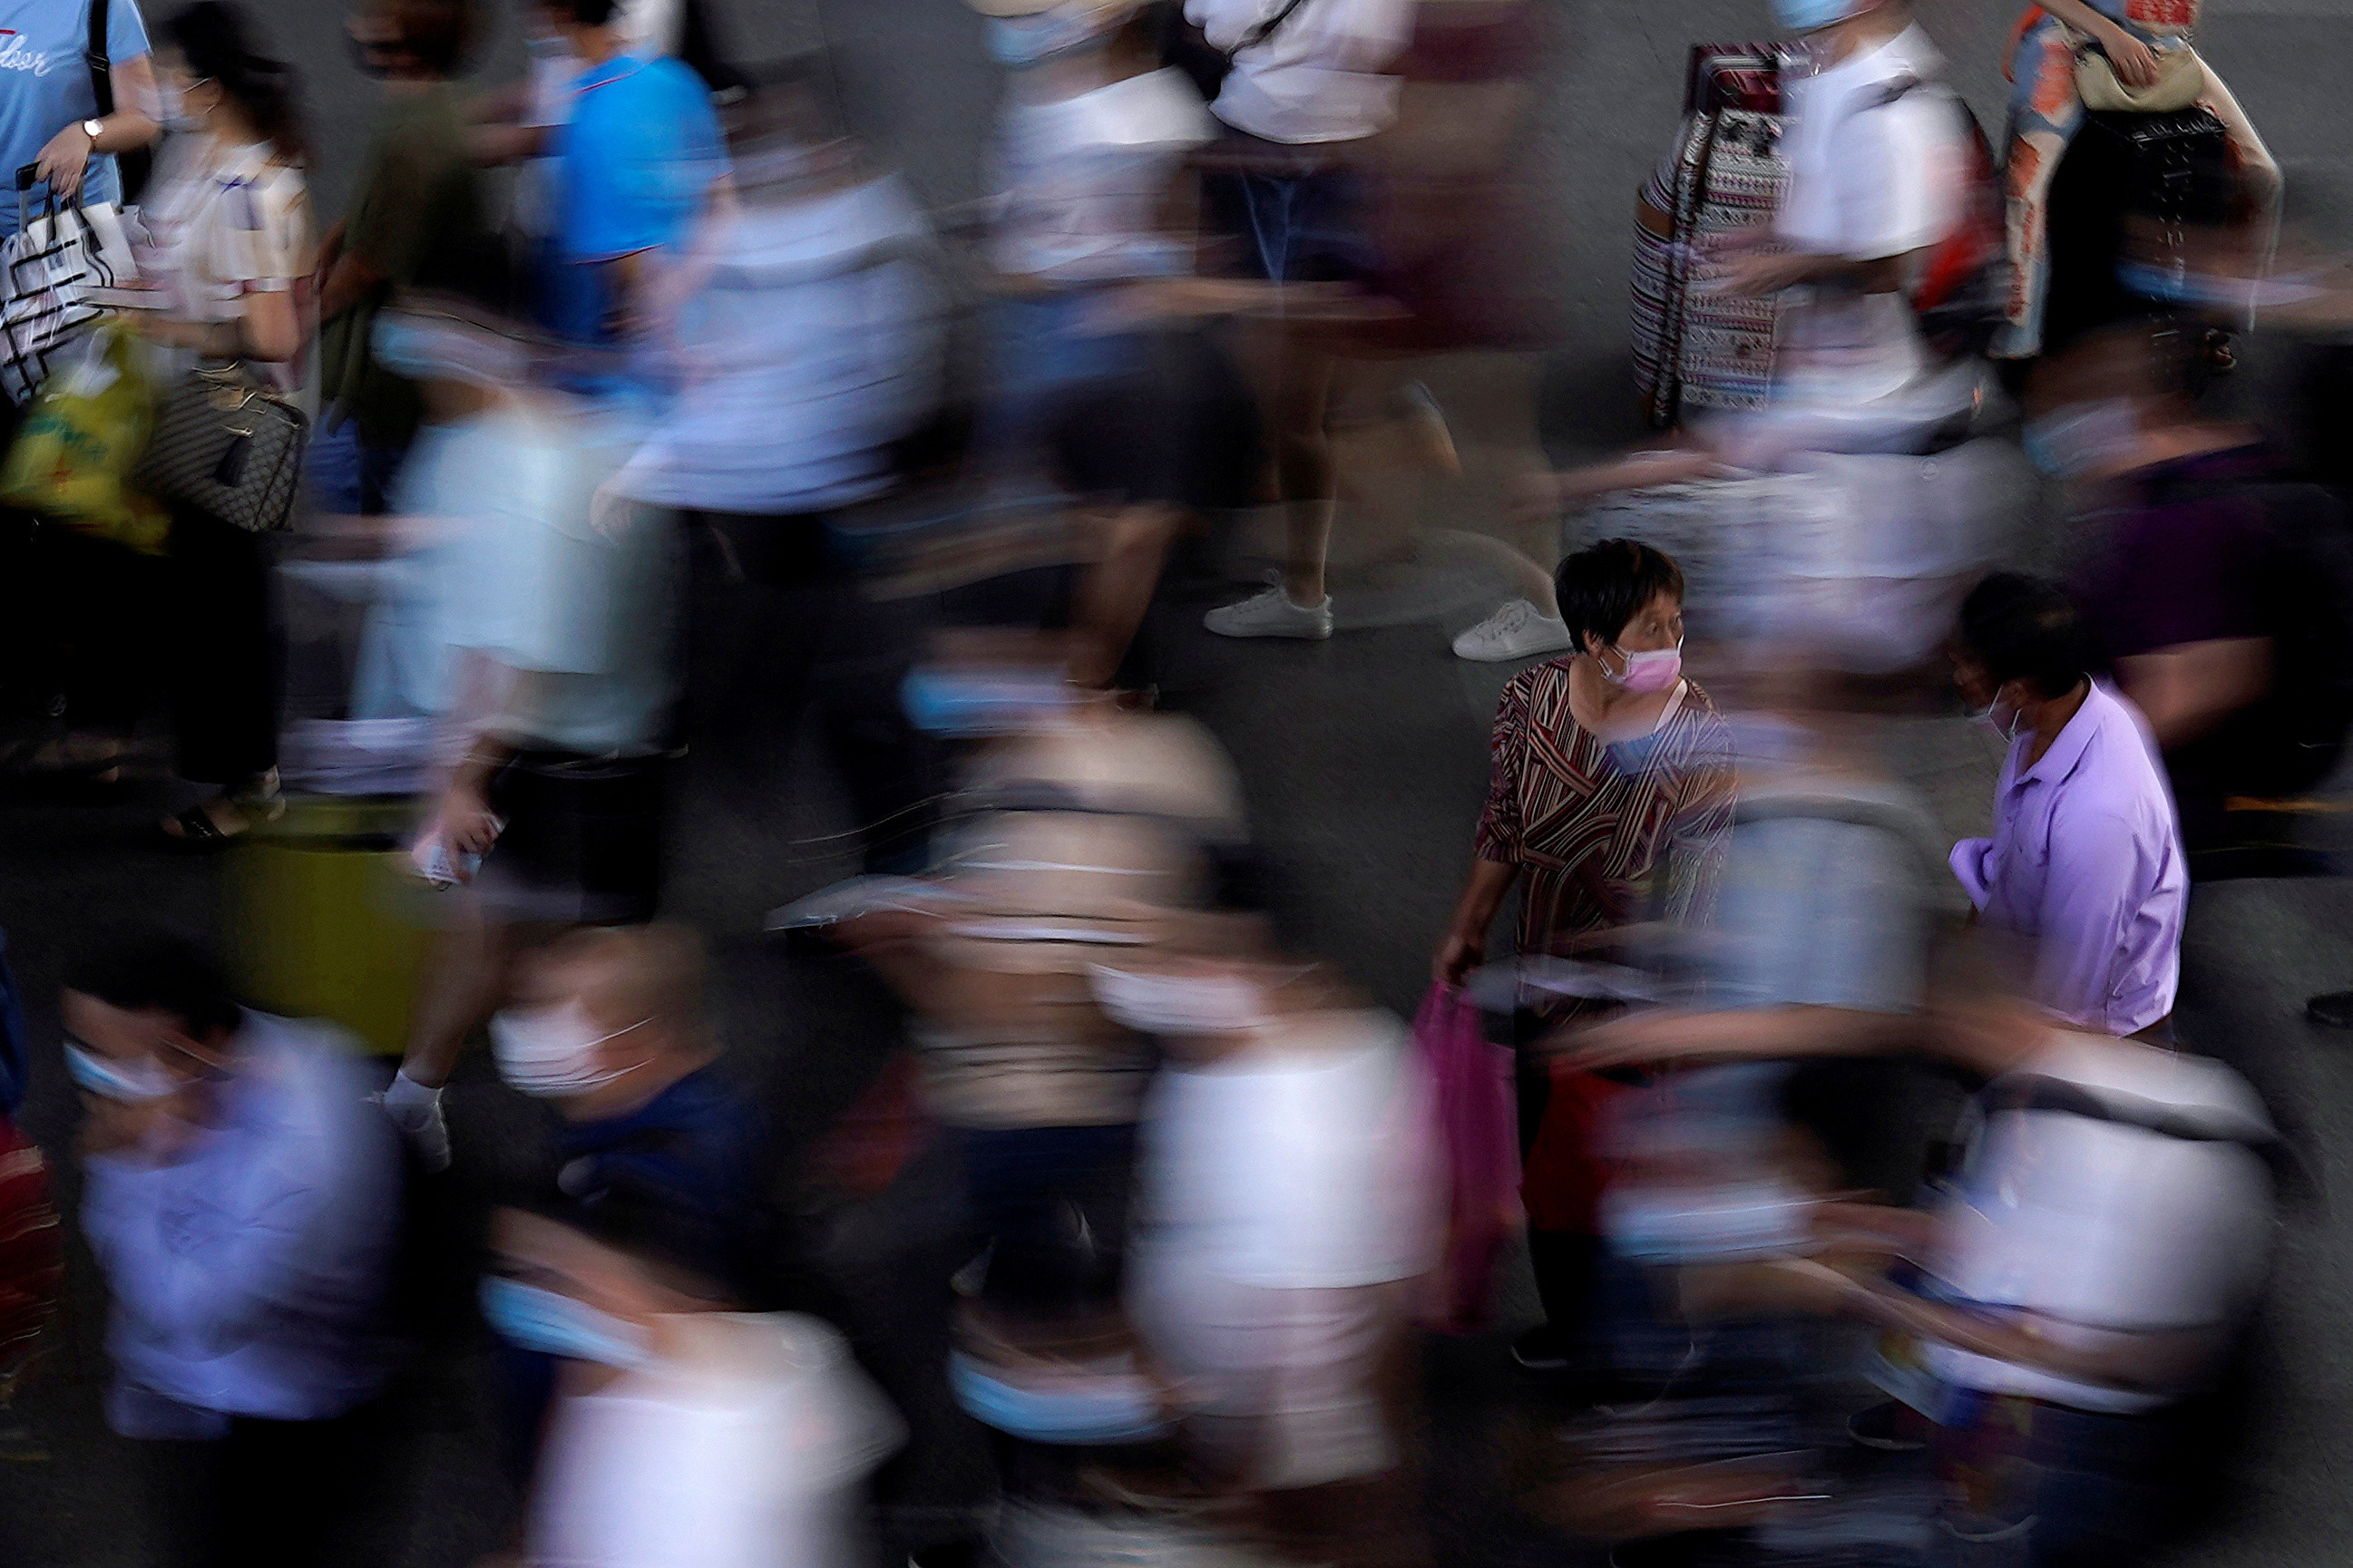 People wearing face masks wait for the train at Suzhou Railway Station, following the coronavirus disease (COVID-19) outbreak, in Suzhou, Jiangsu province, China July 7, 2020. Picture taken July 7, 2020. REUTERS/Aly Song     TPX IMAGES OF THE DAY - RC2POH9RBKOH